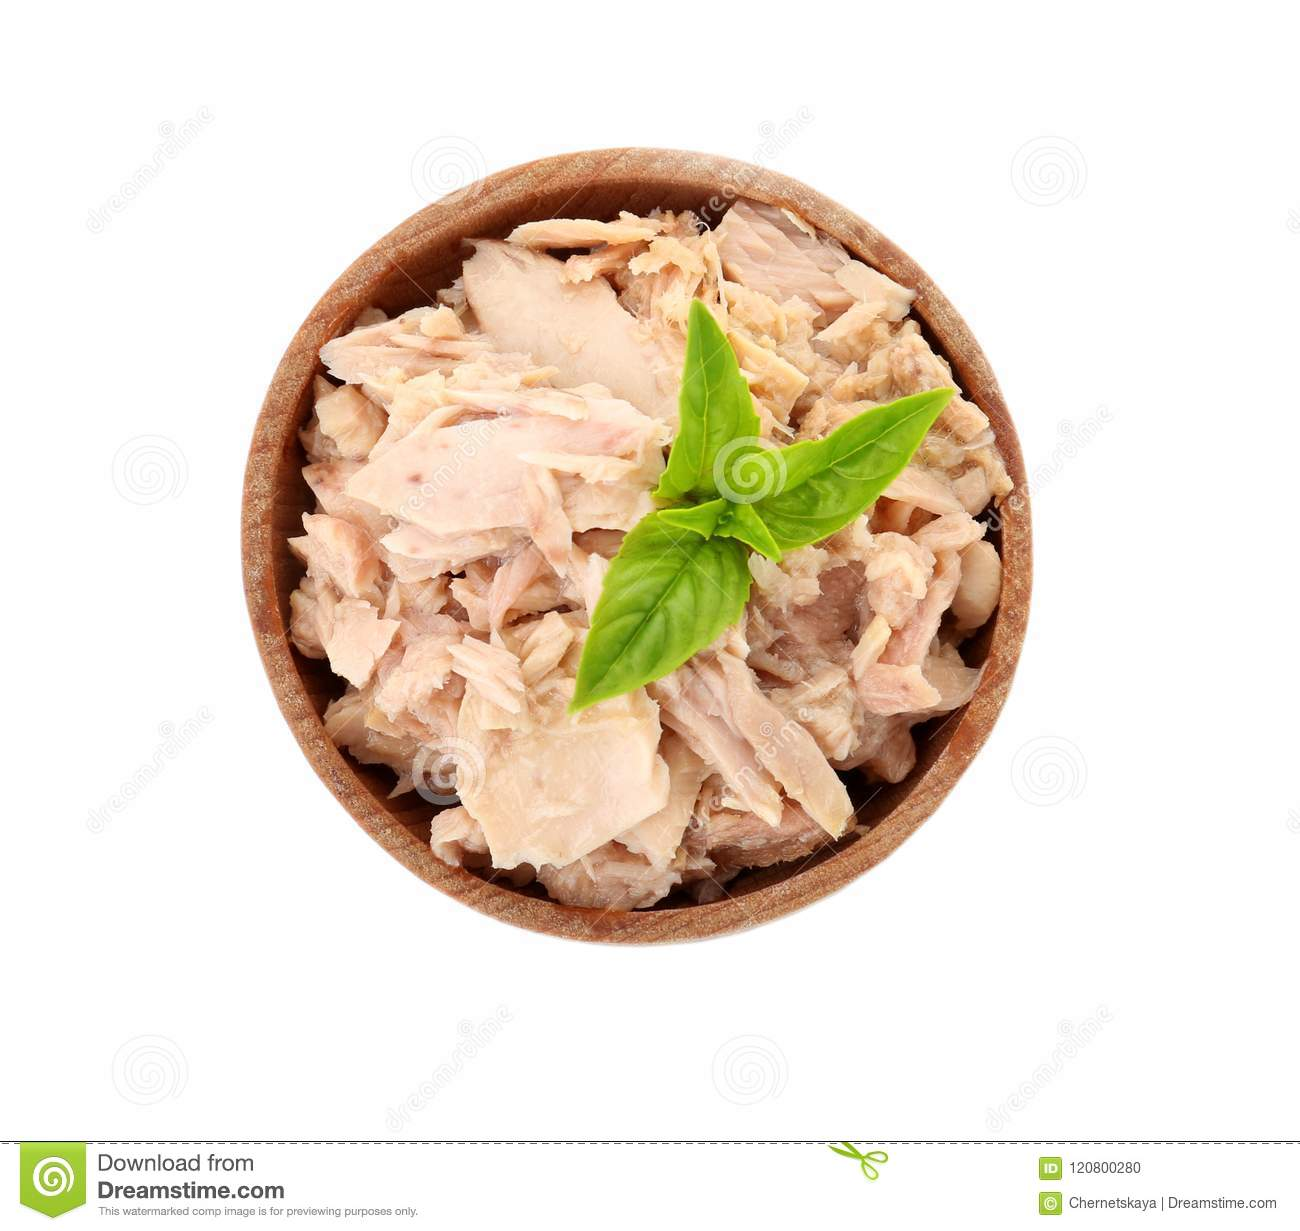 Bowl with canned tuna on white background